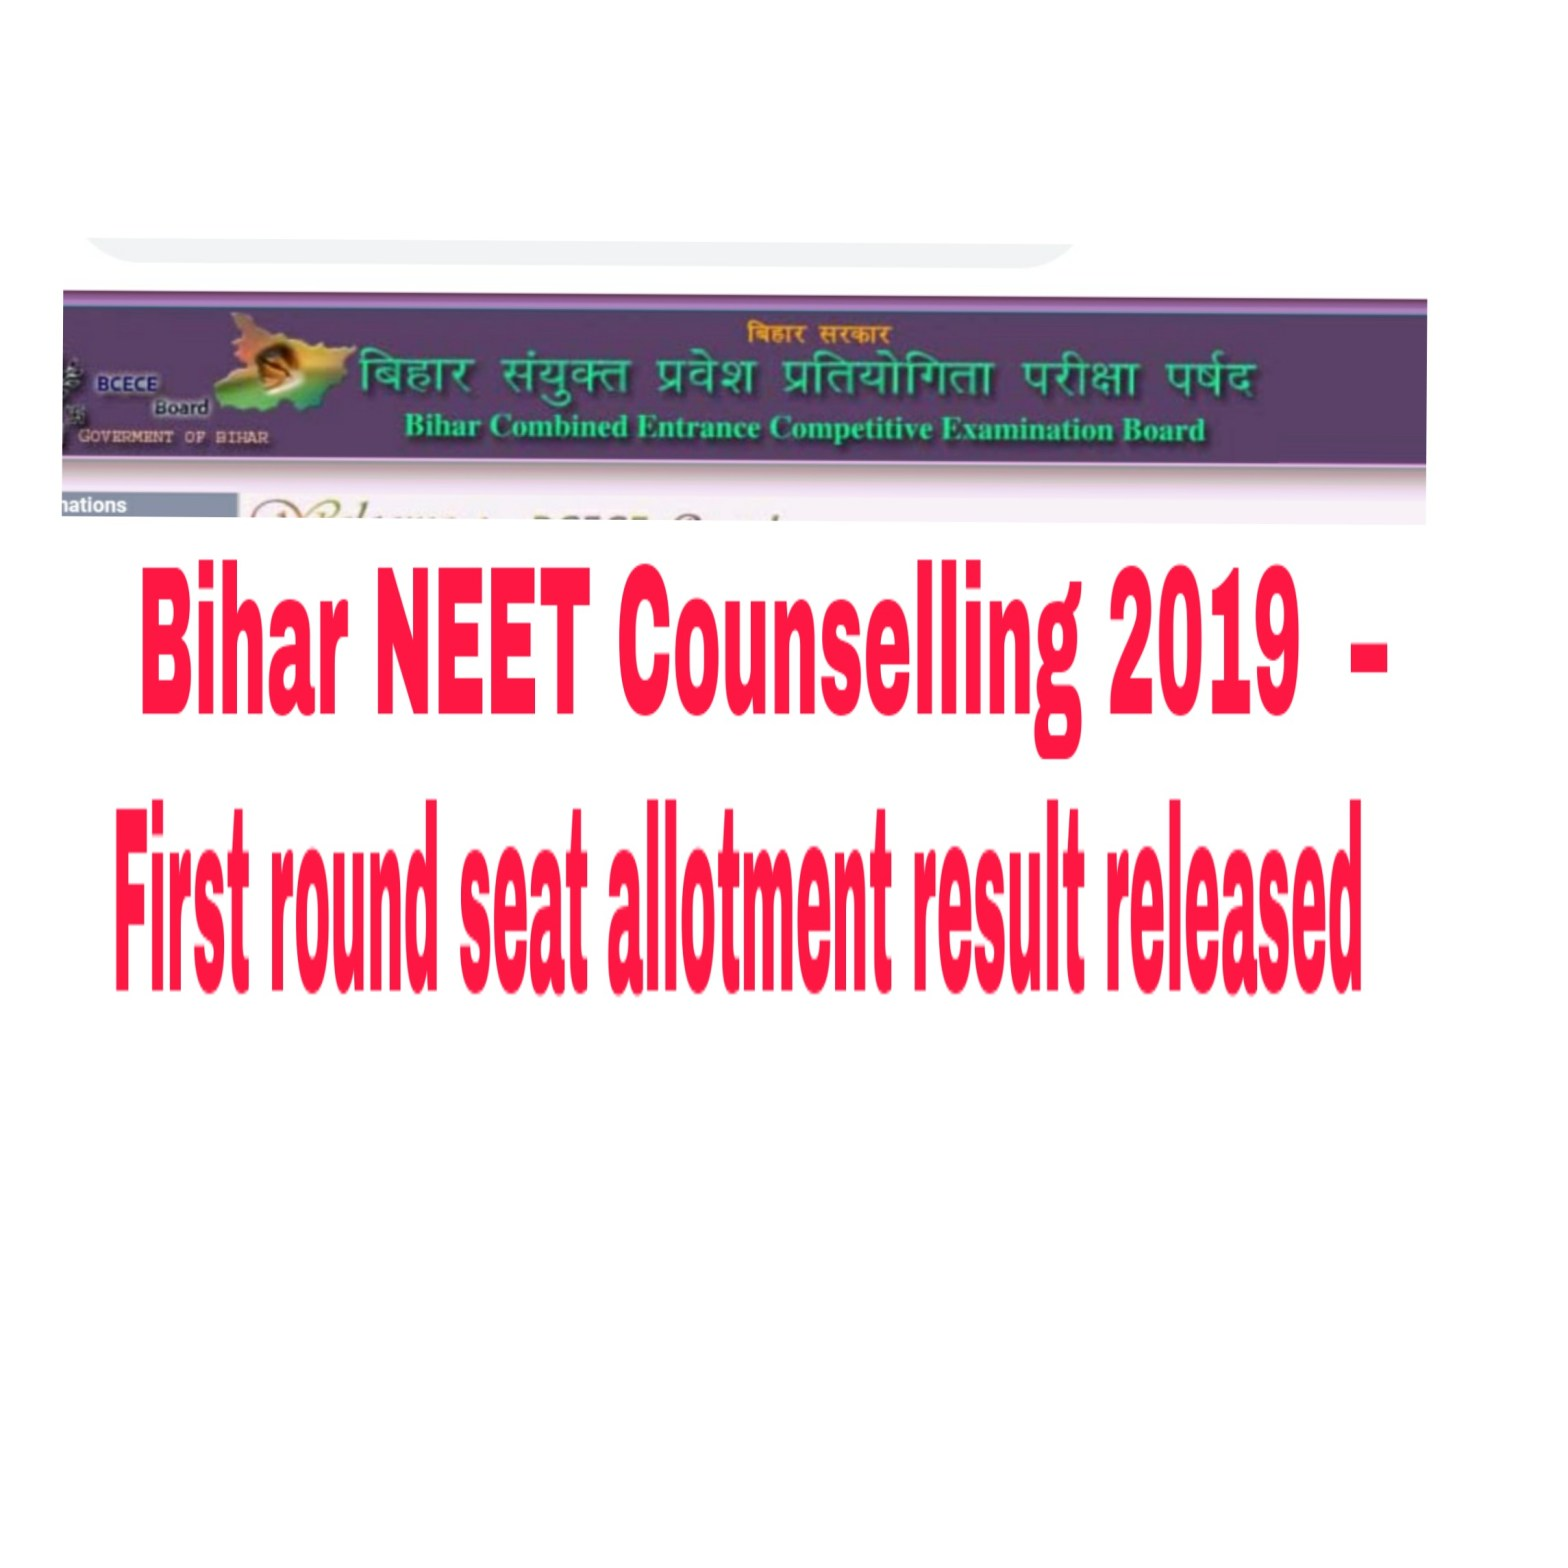 Bihar NEET Counselling 2019 – First round seat allotment result released